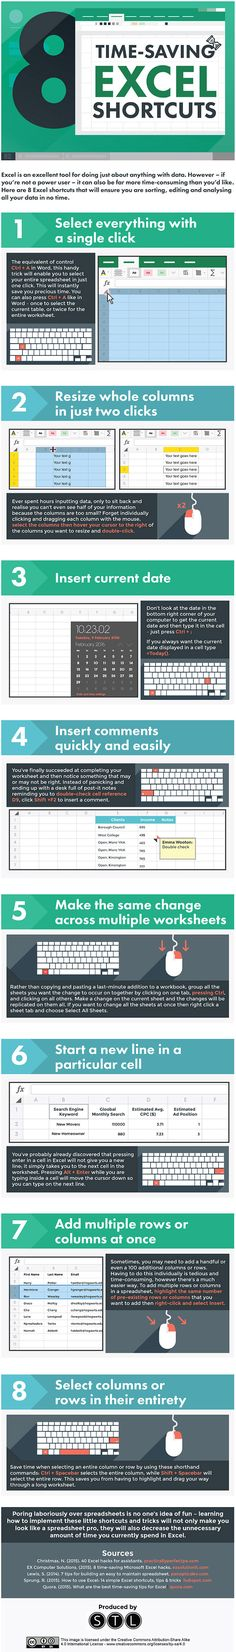 Roberts Joseph-Staffing (roberts_joseph) on Pinterest - sales lead tracking spreadsheet